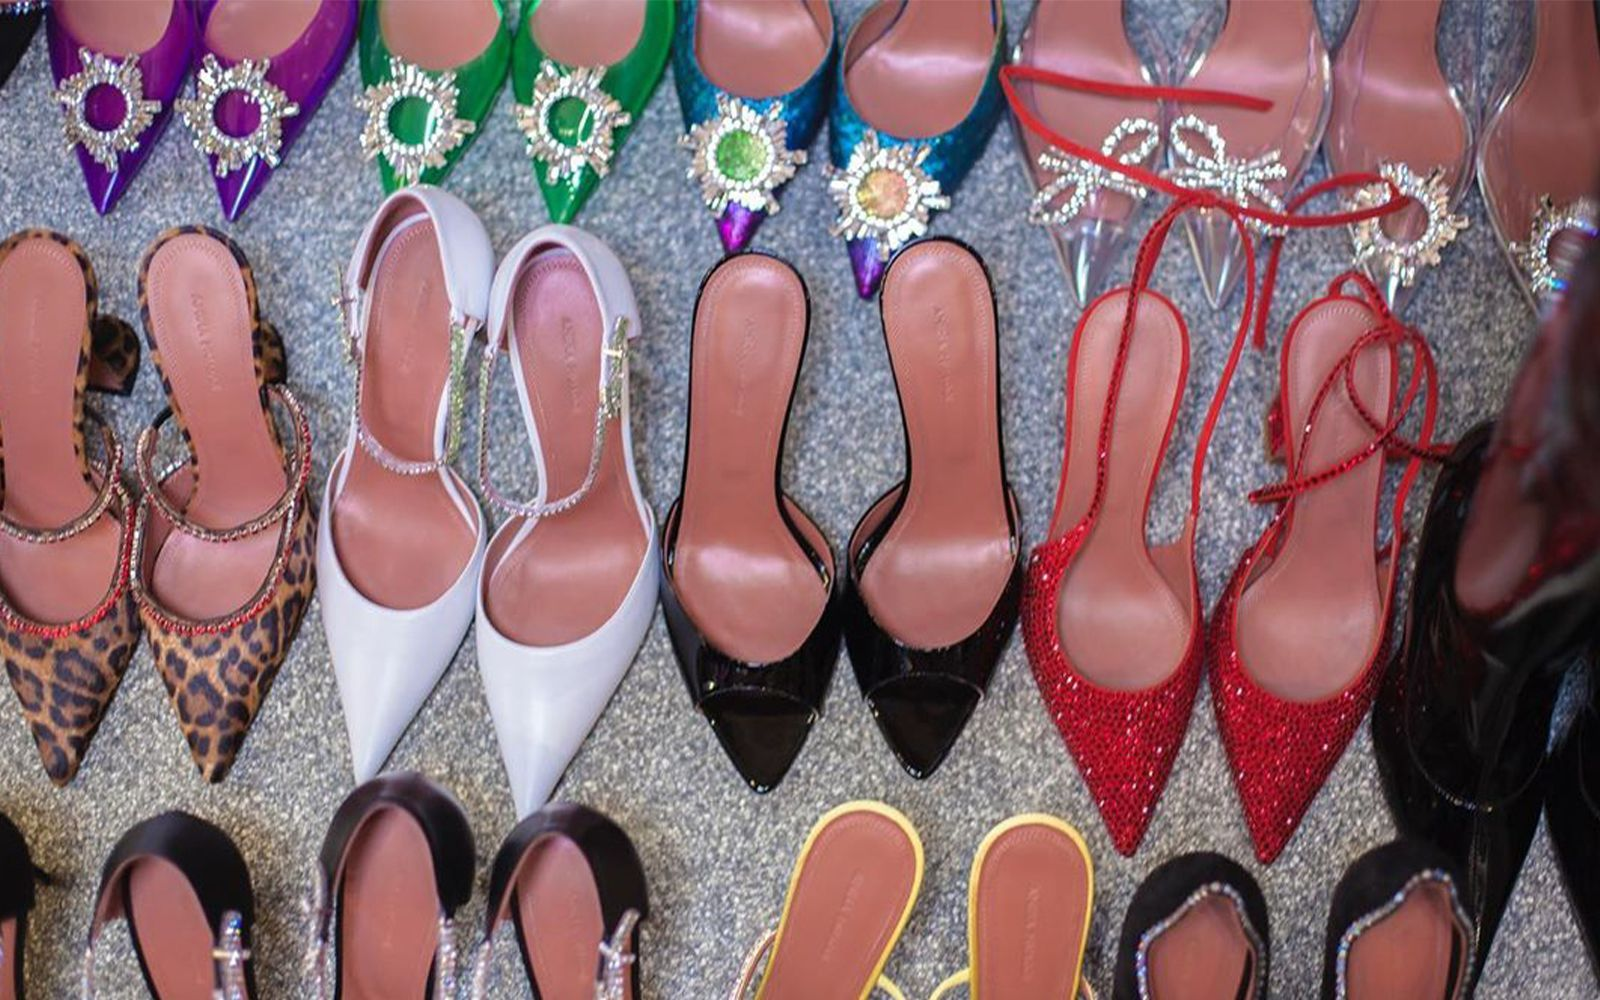 Amina Muaddi's new shoes for the FW20 collection